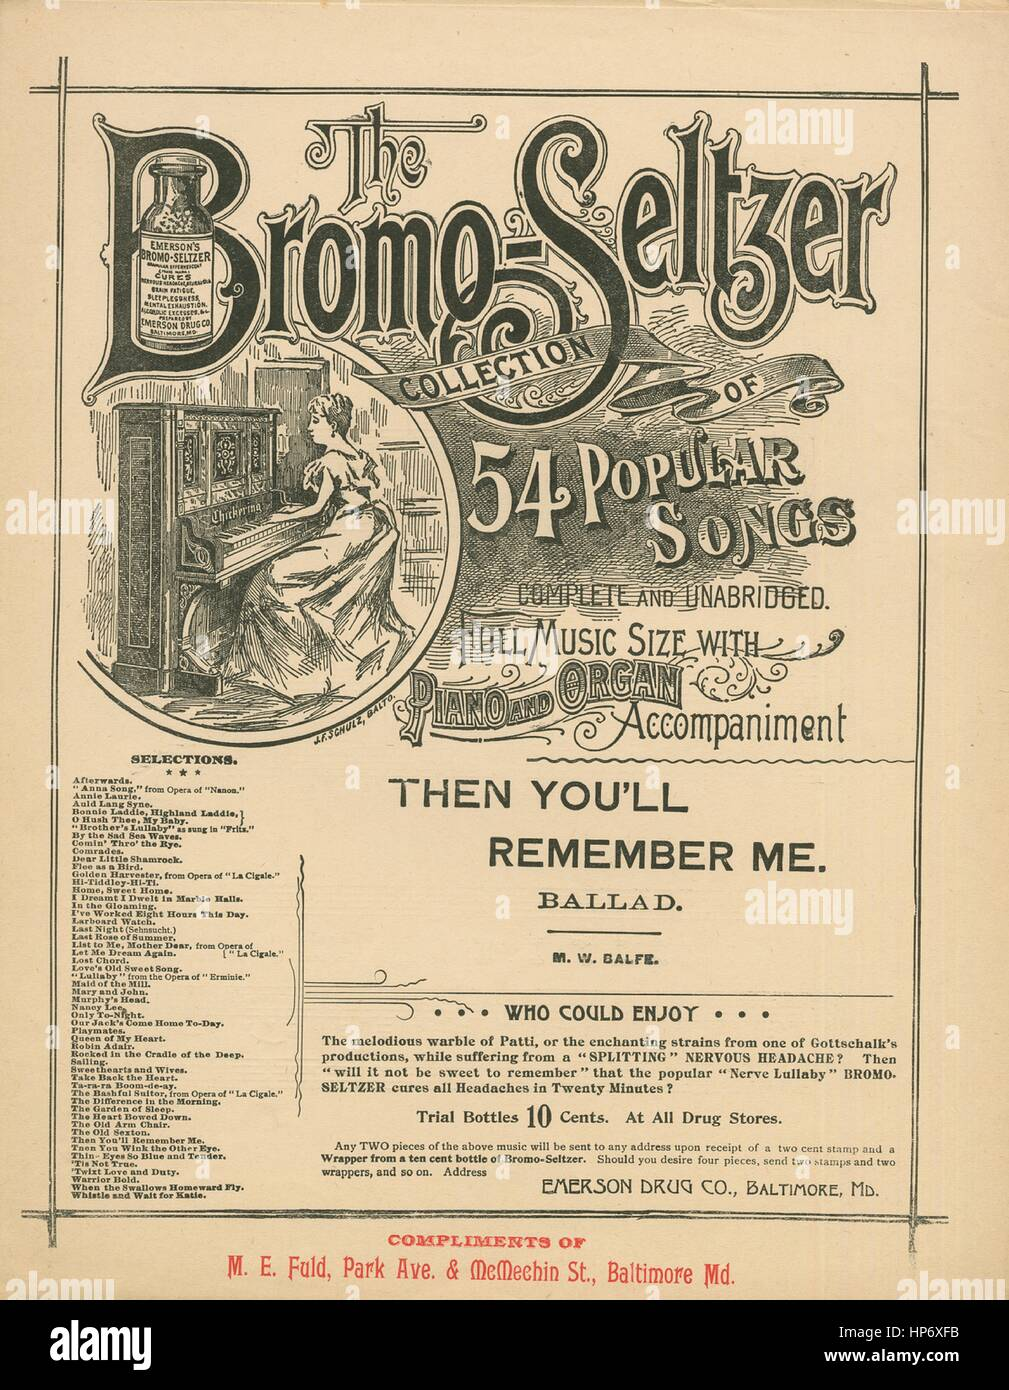 Sheet music cover image of the song 'The Bromo-Seltzer Collection of